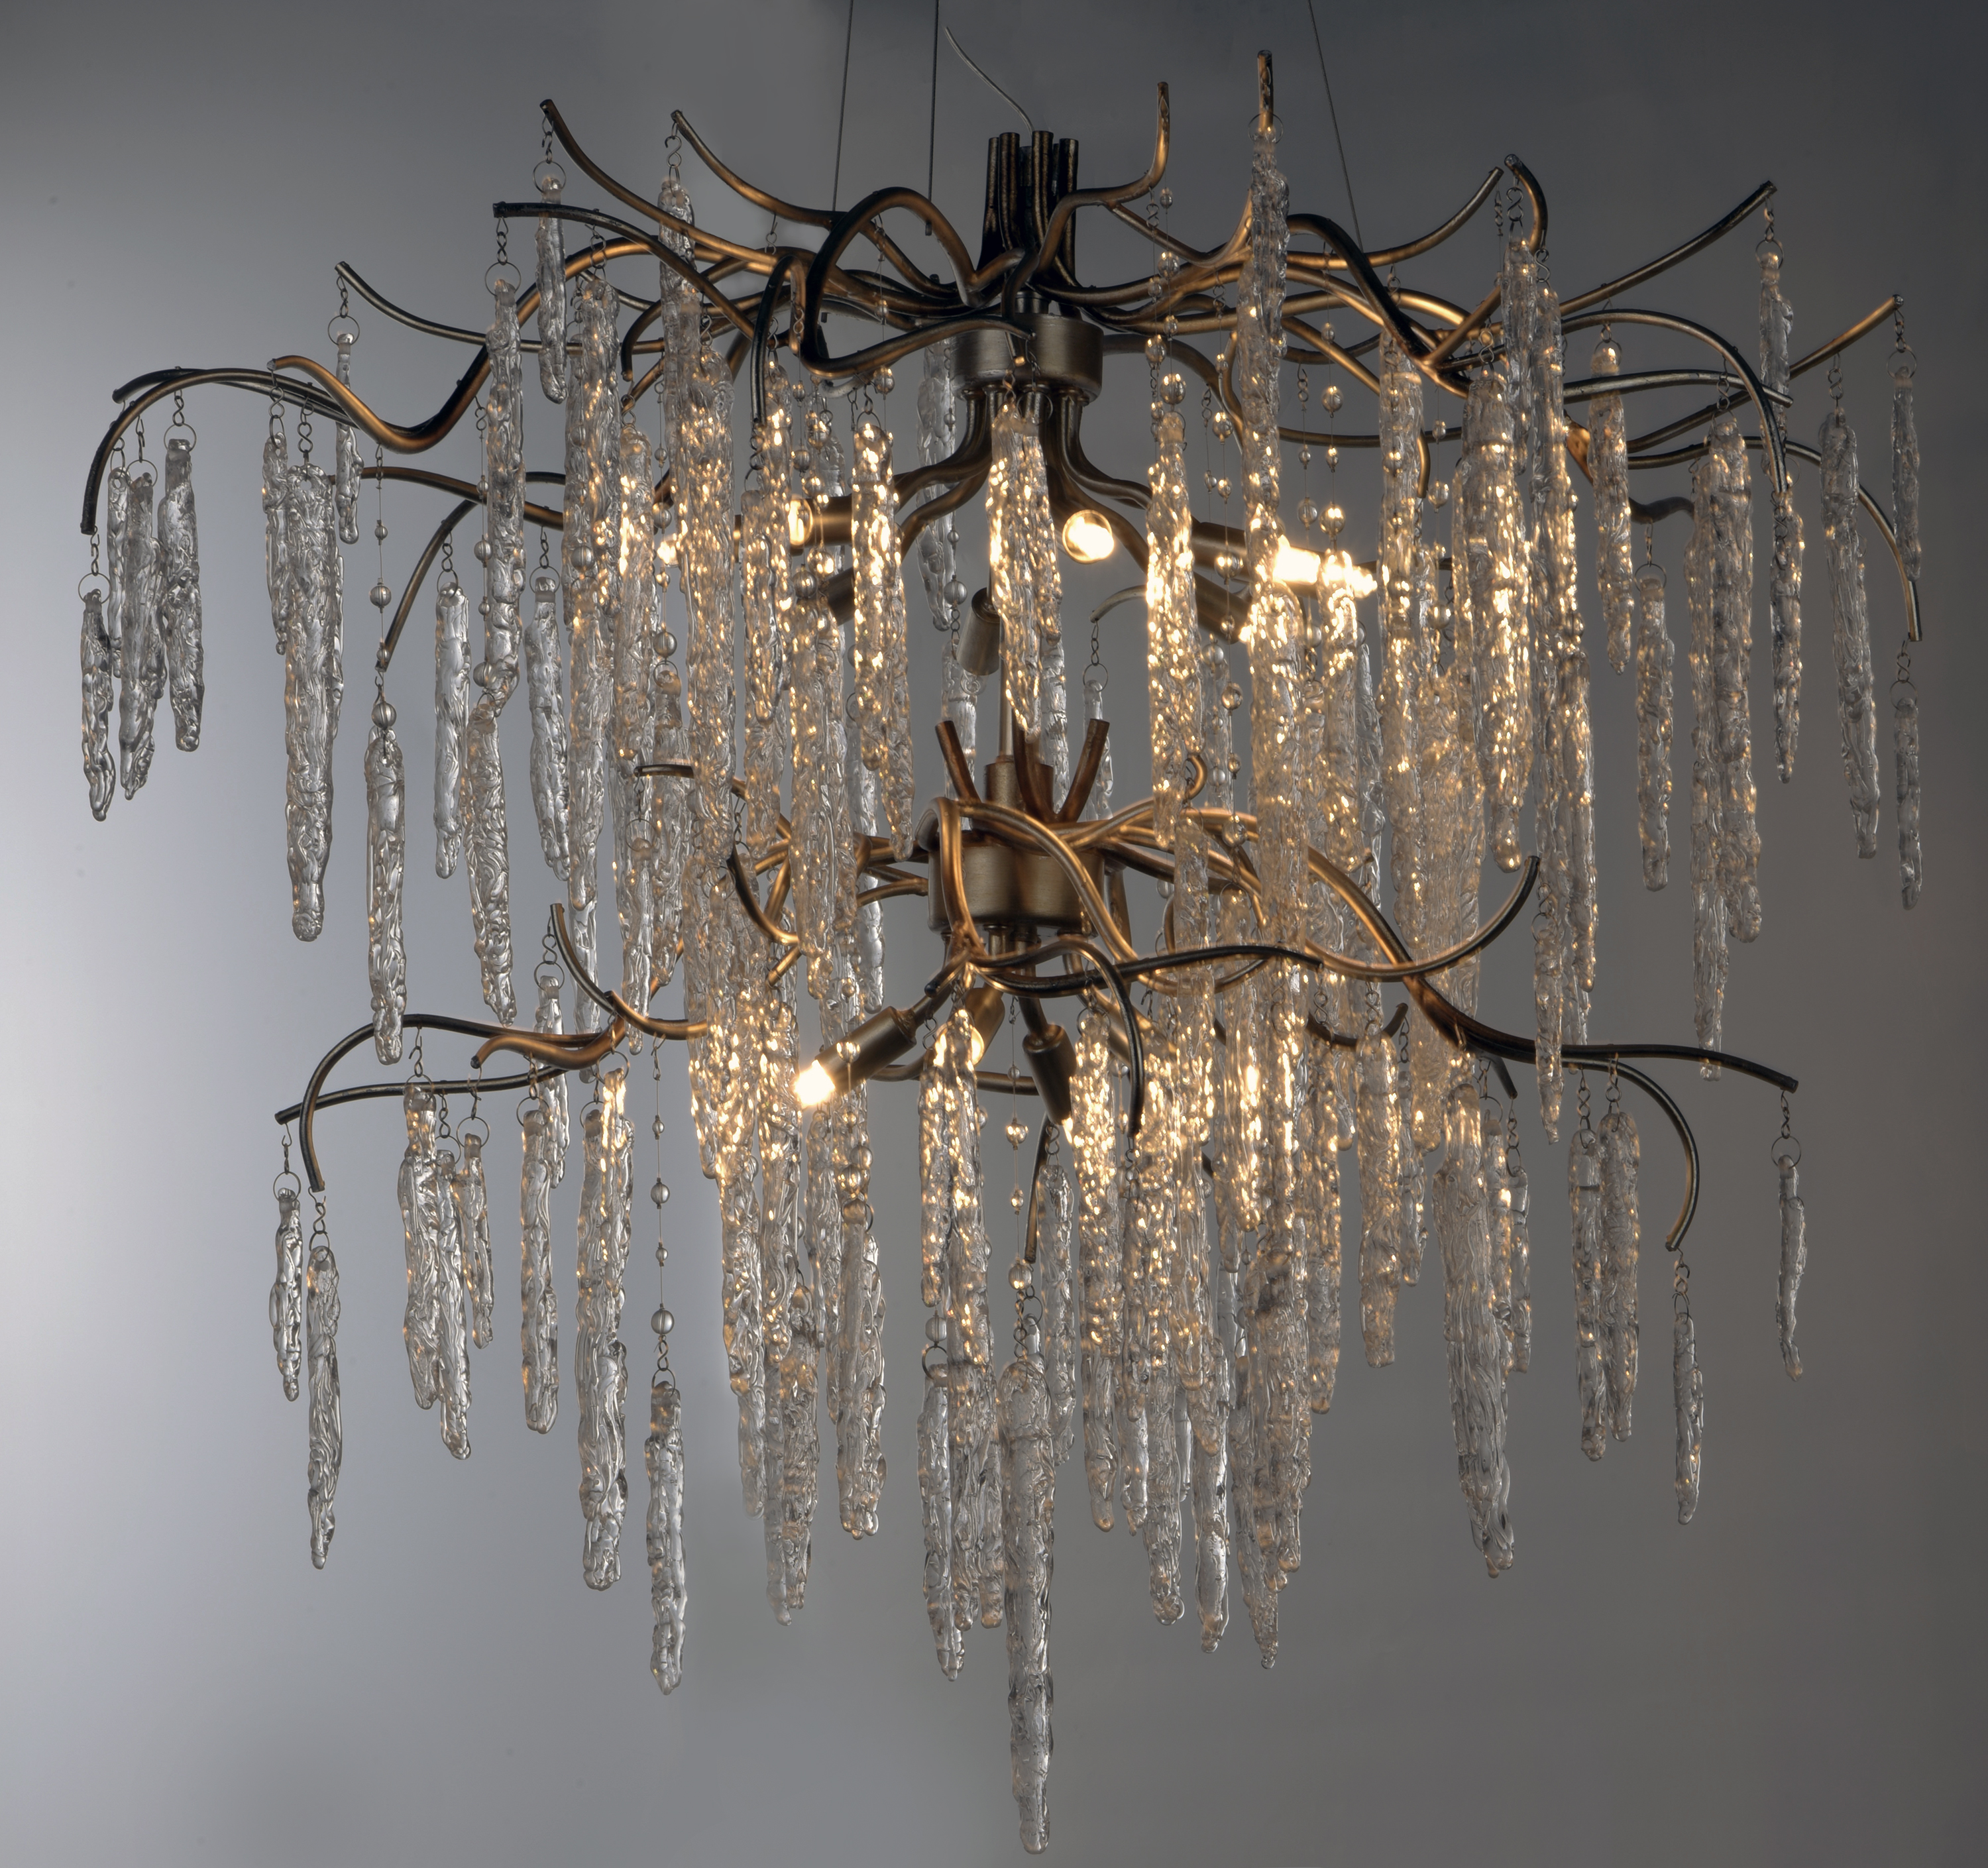 Willow 12 light chandelier multi tier chandelier maxim lighting willow willow 12 light chandelier aloadofball Image collections